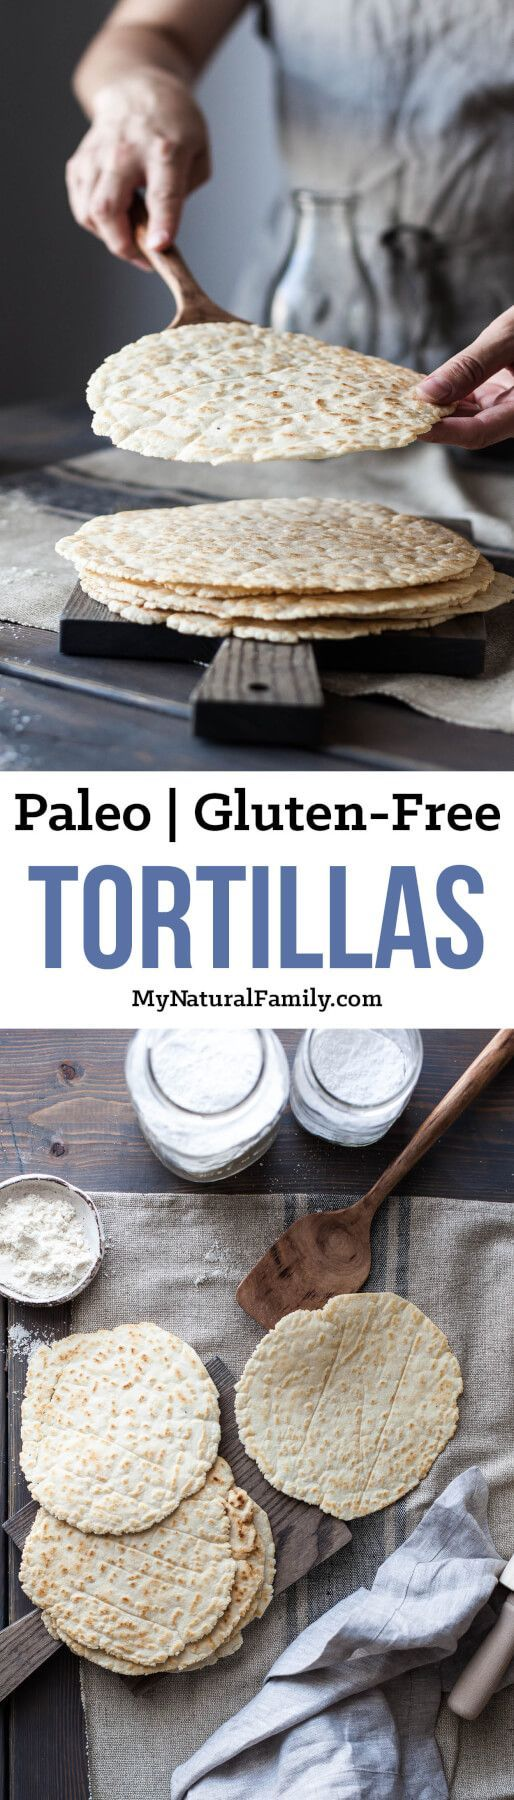 These Paleo tortillas are really good. I like to make a bunch ahead of time and have them on hand for lunch, between meals, breakfast burritos or for all sorts of dinner uses, like tacos, burritos, wraps, fajitas, enchiladas - or even in place of naan, pitas or bread.